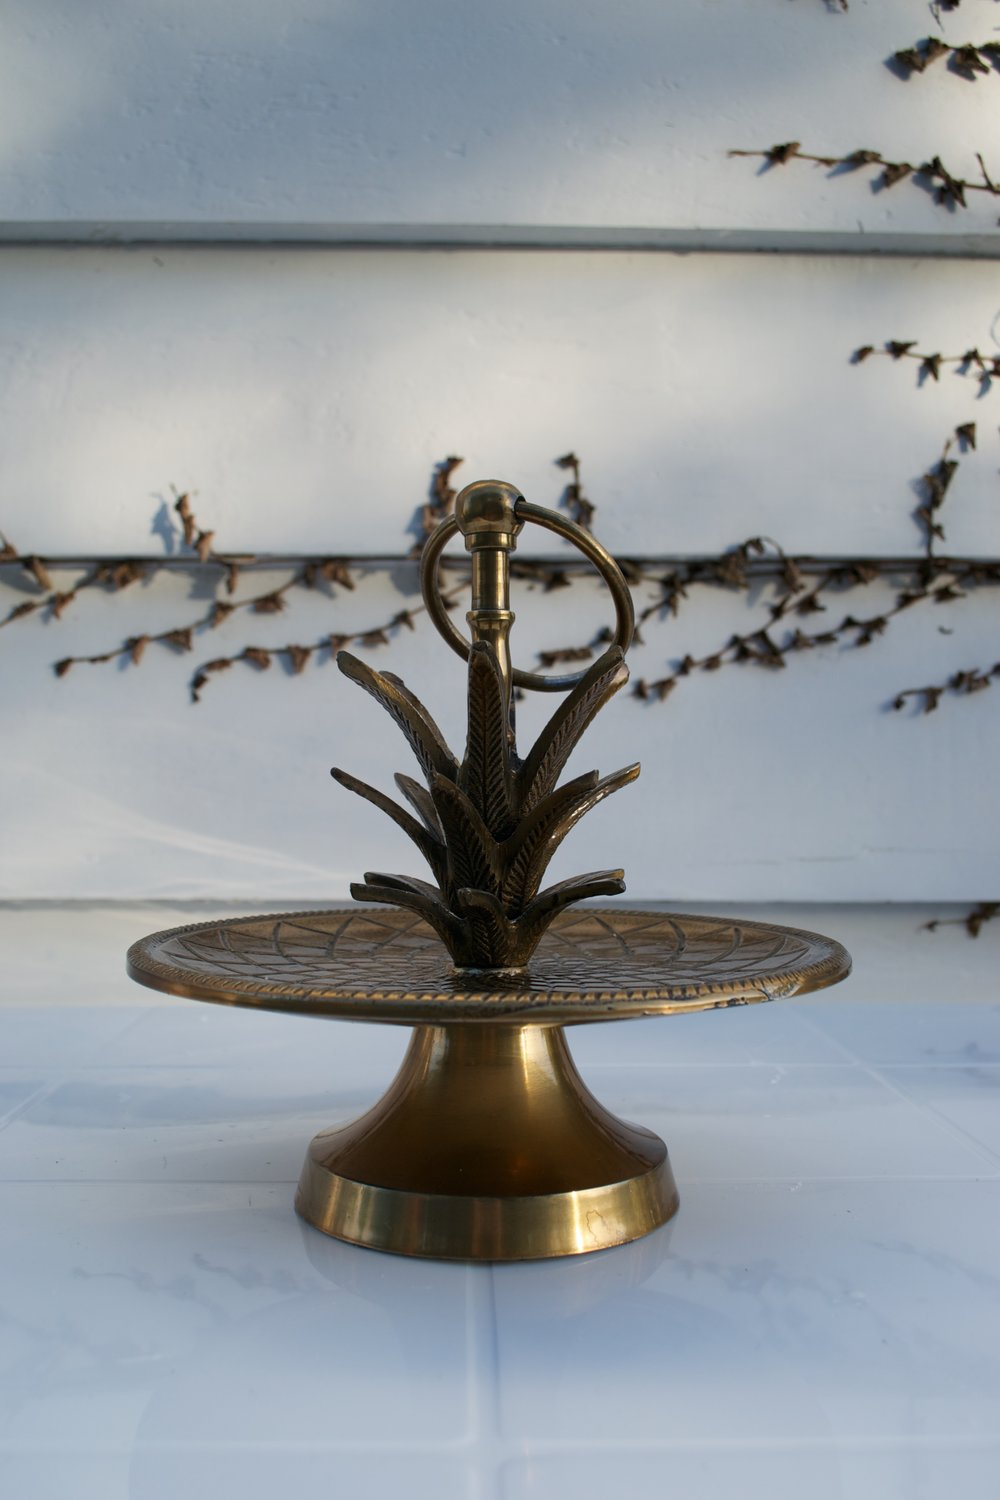 gold pineapple cake stand x1 $10